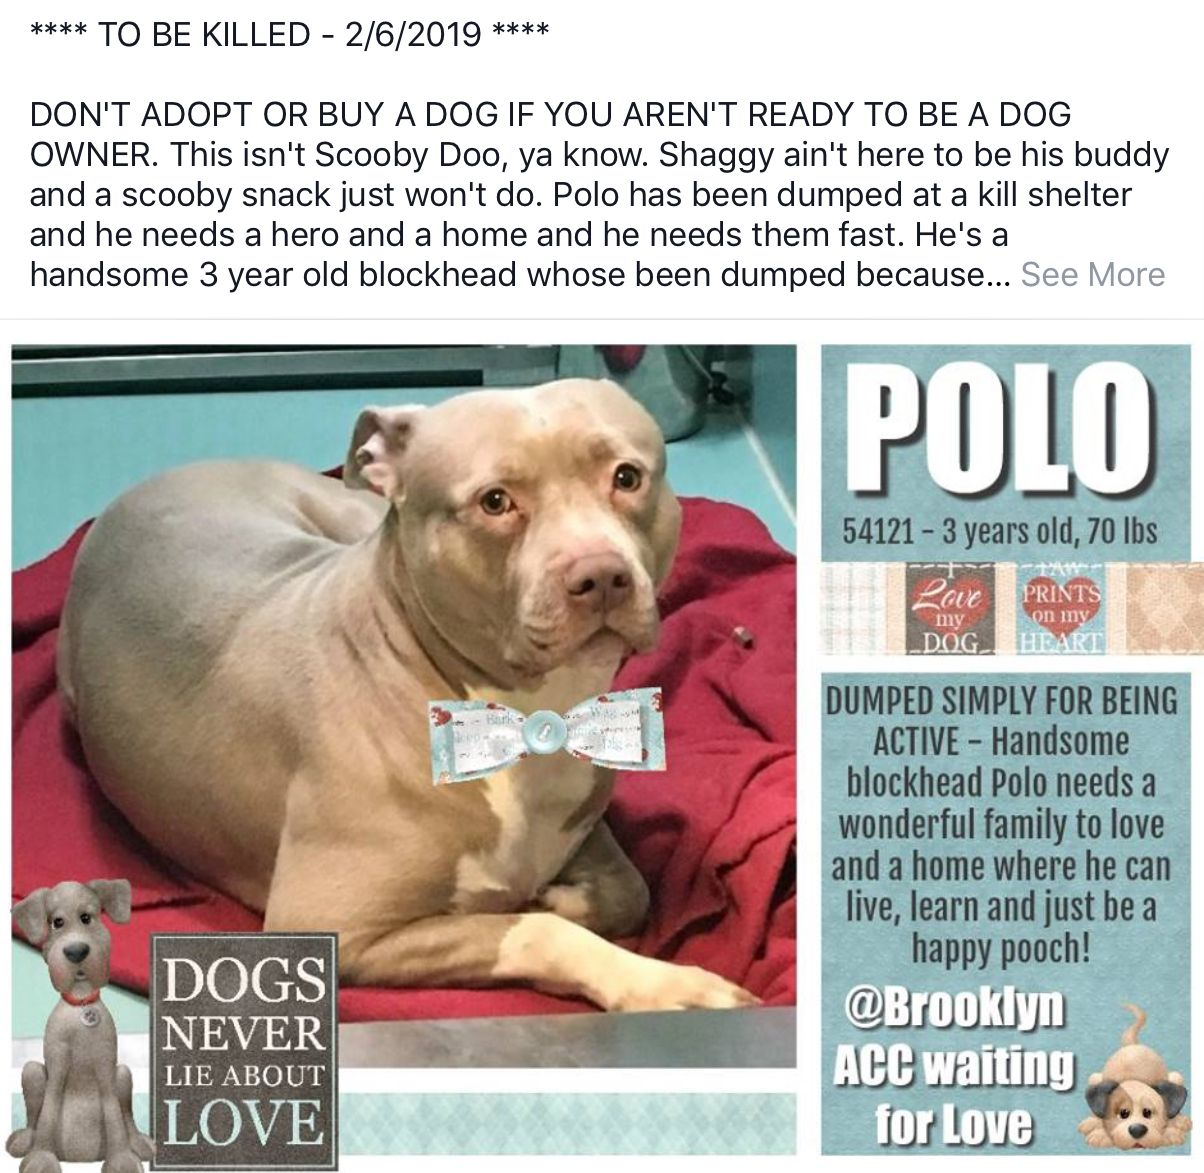 POLO PULLED BY POUND HOUNDS RESCUE❤️❤️02/07/19 ~ TO DIE